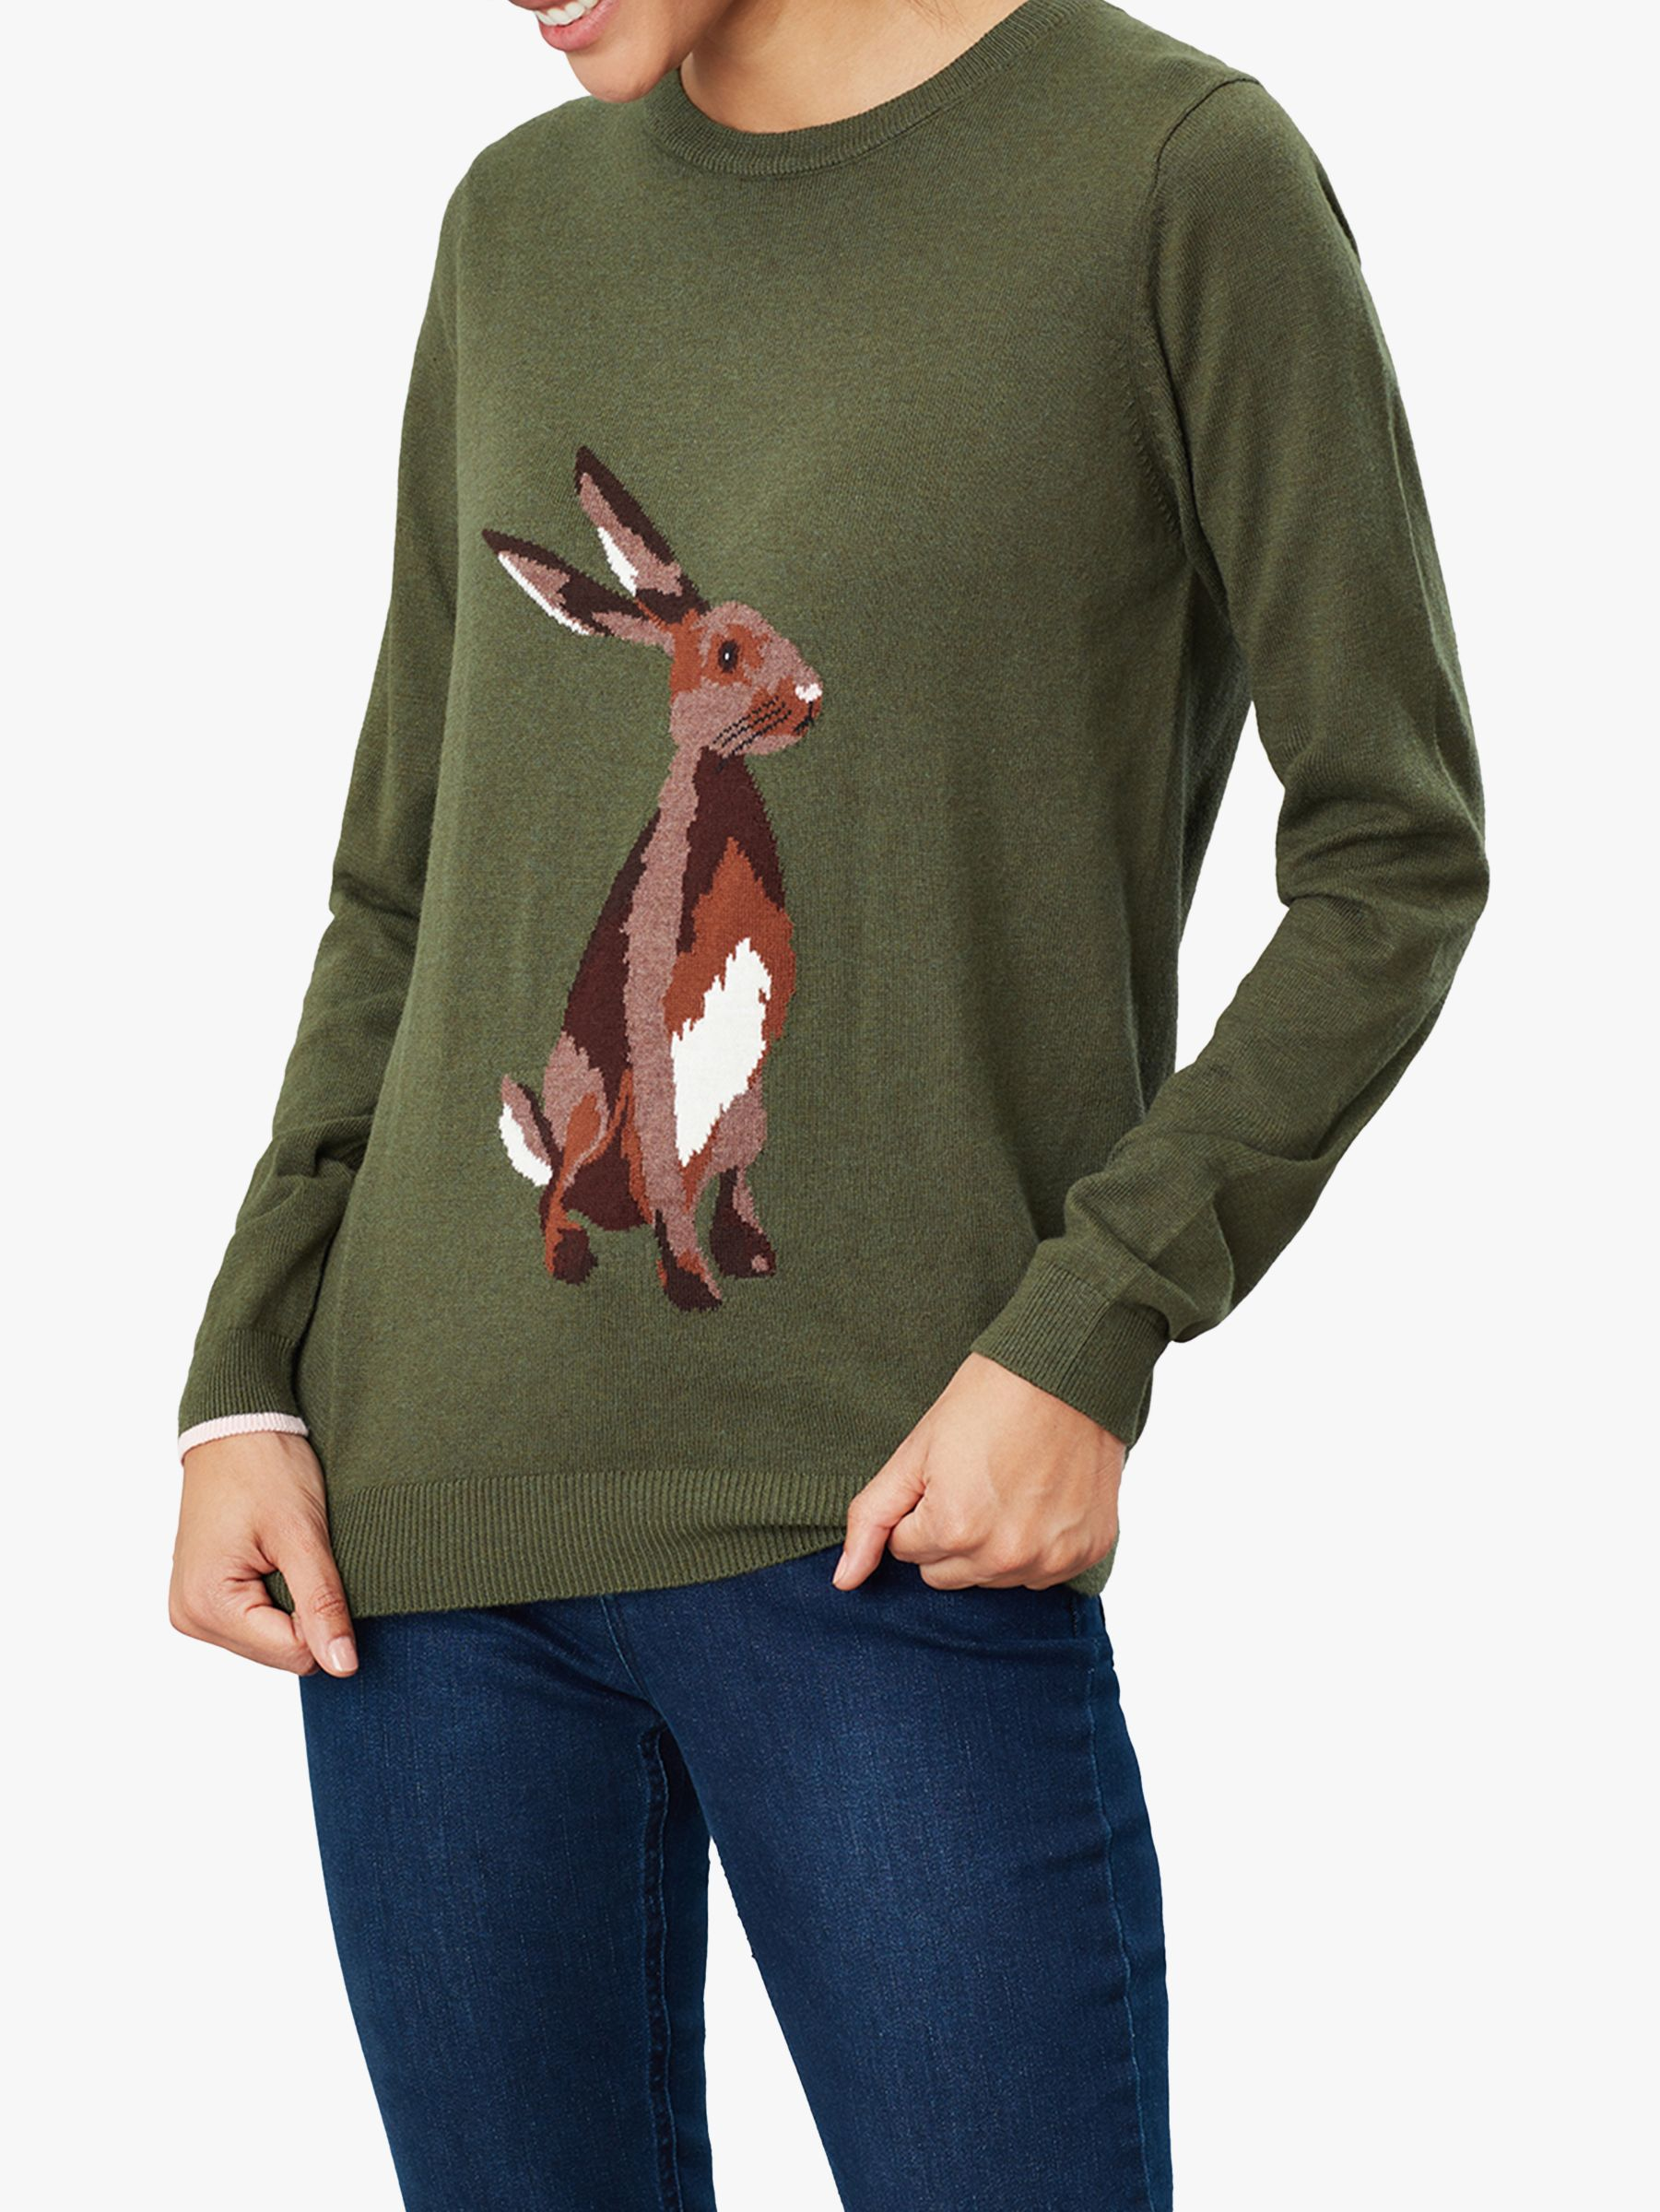 Joules Joules Miranda Crew Neck Jumper, Green Hare